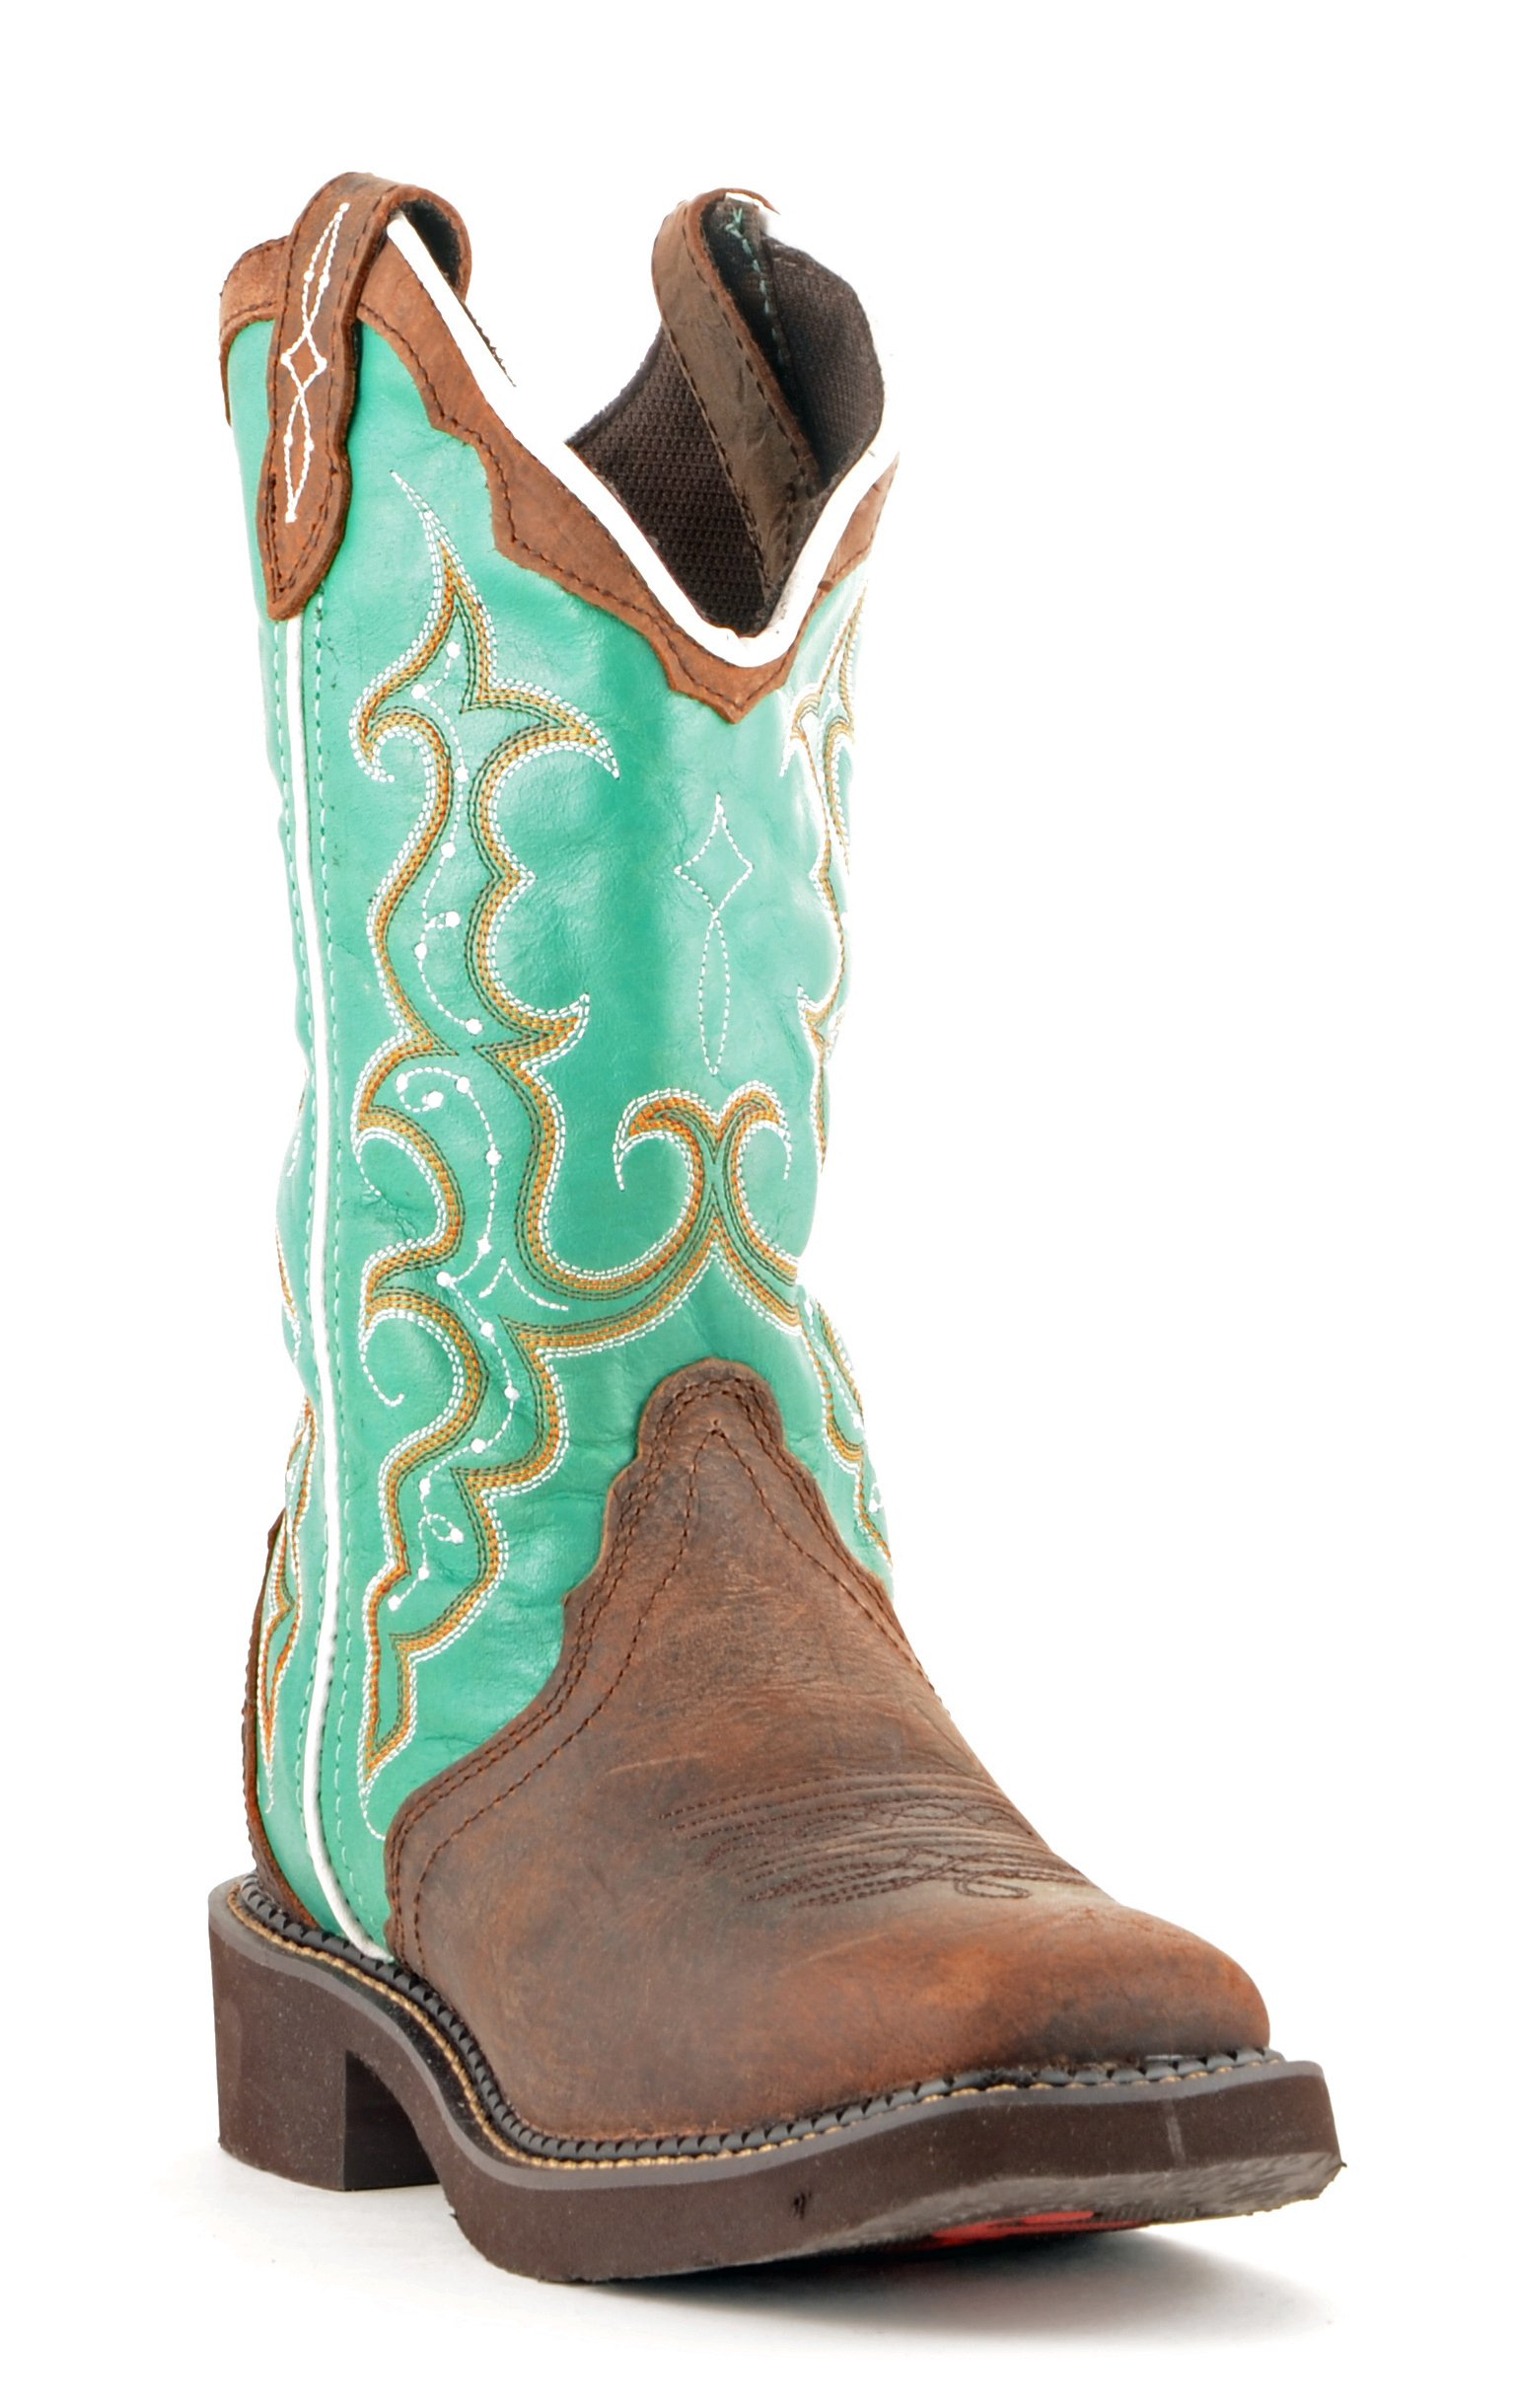 Justin Women's Brown Cowhide Gypsy Boots